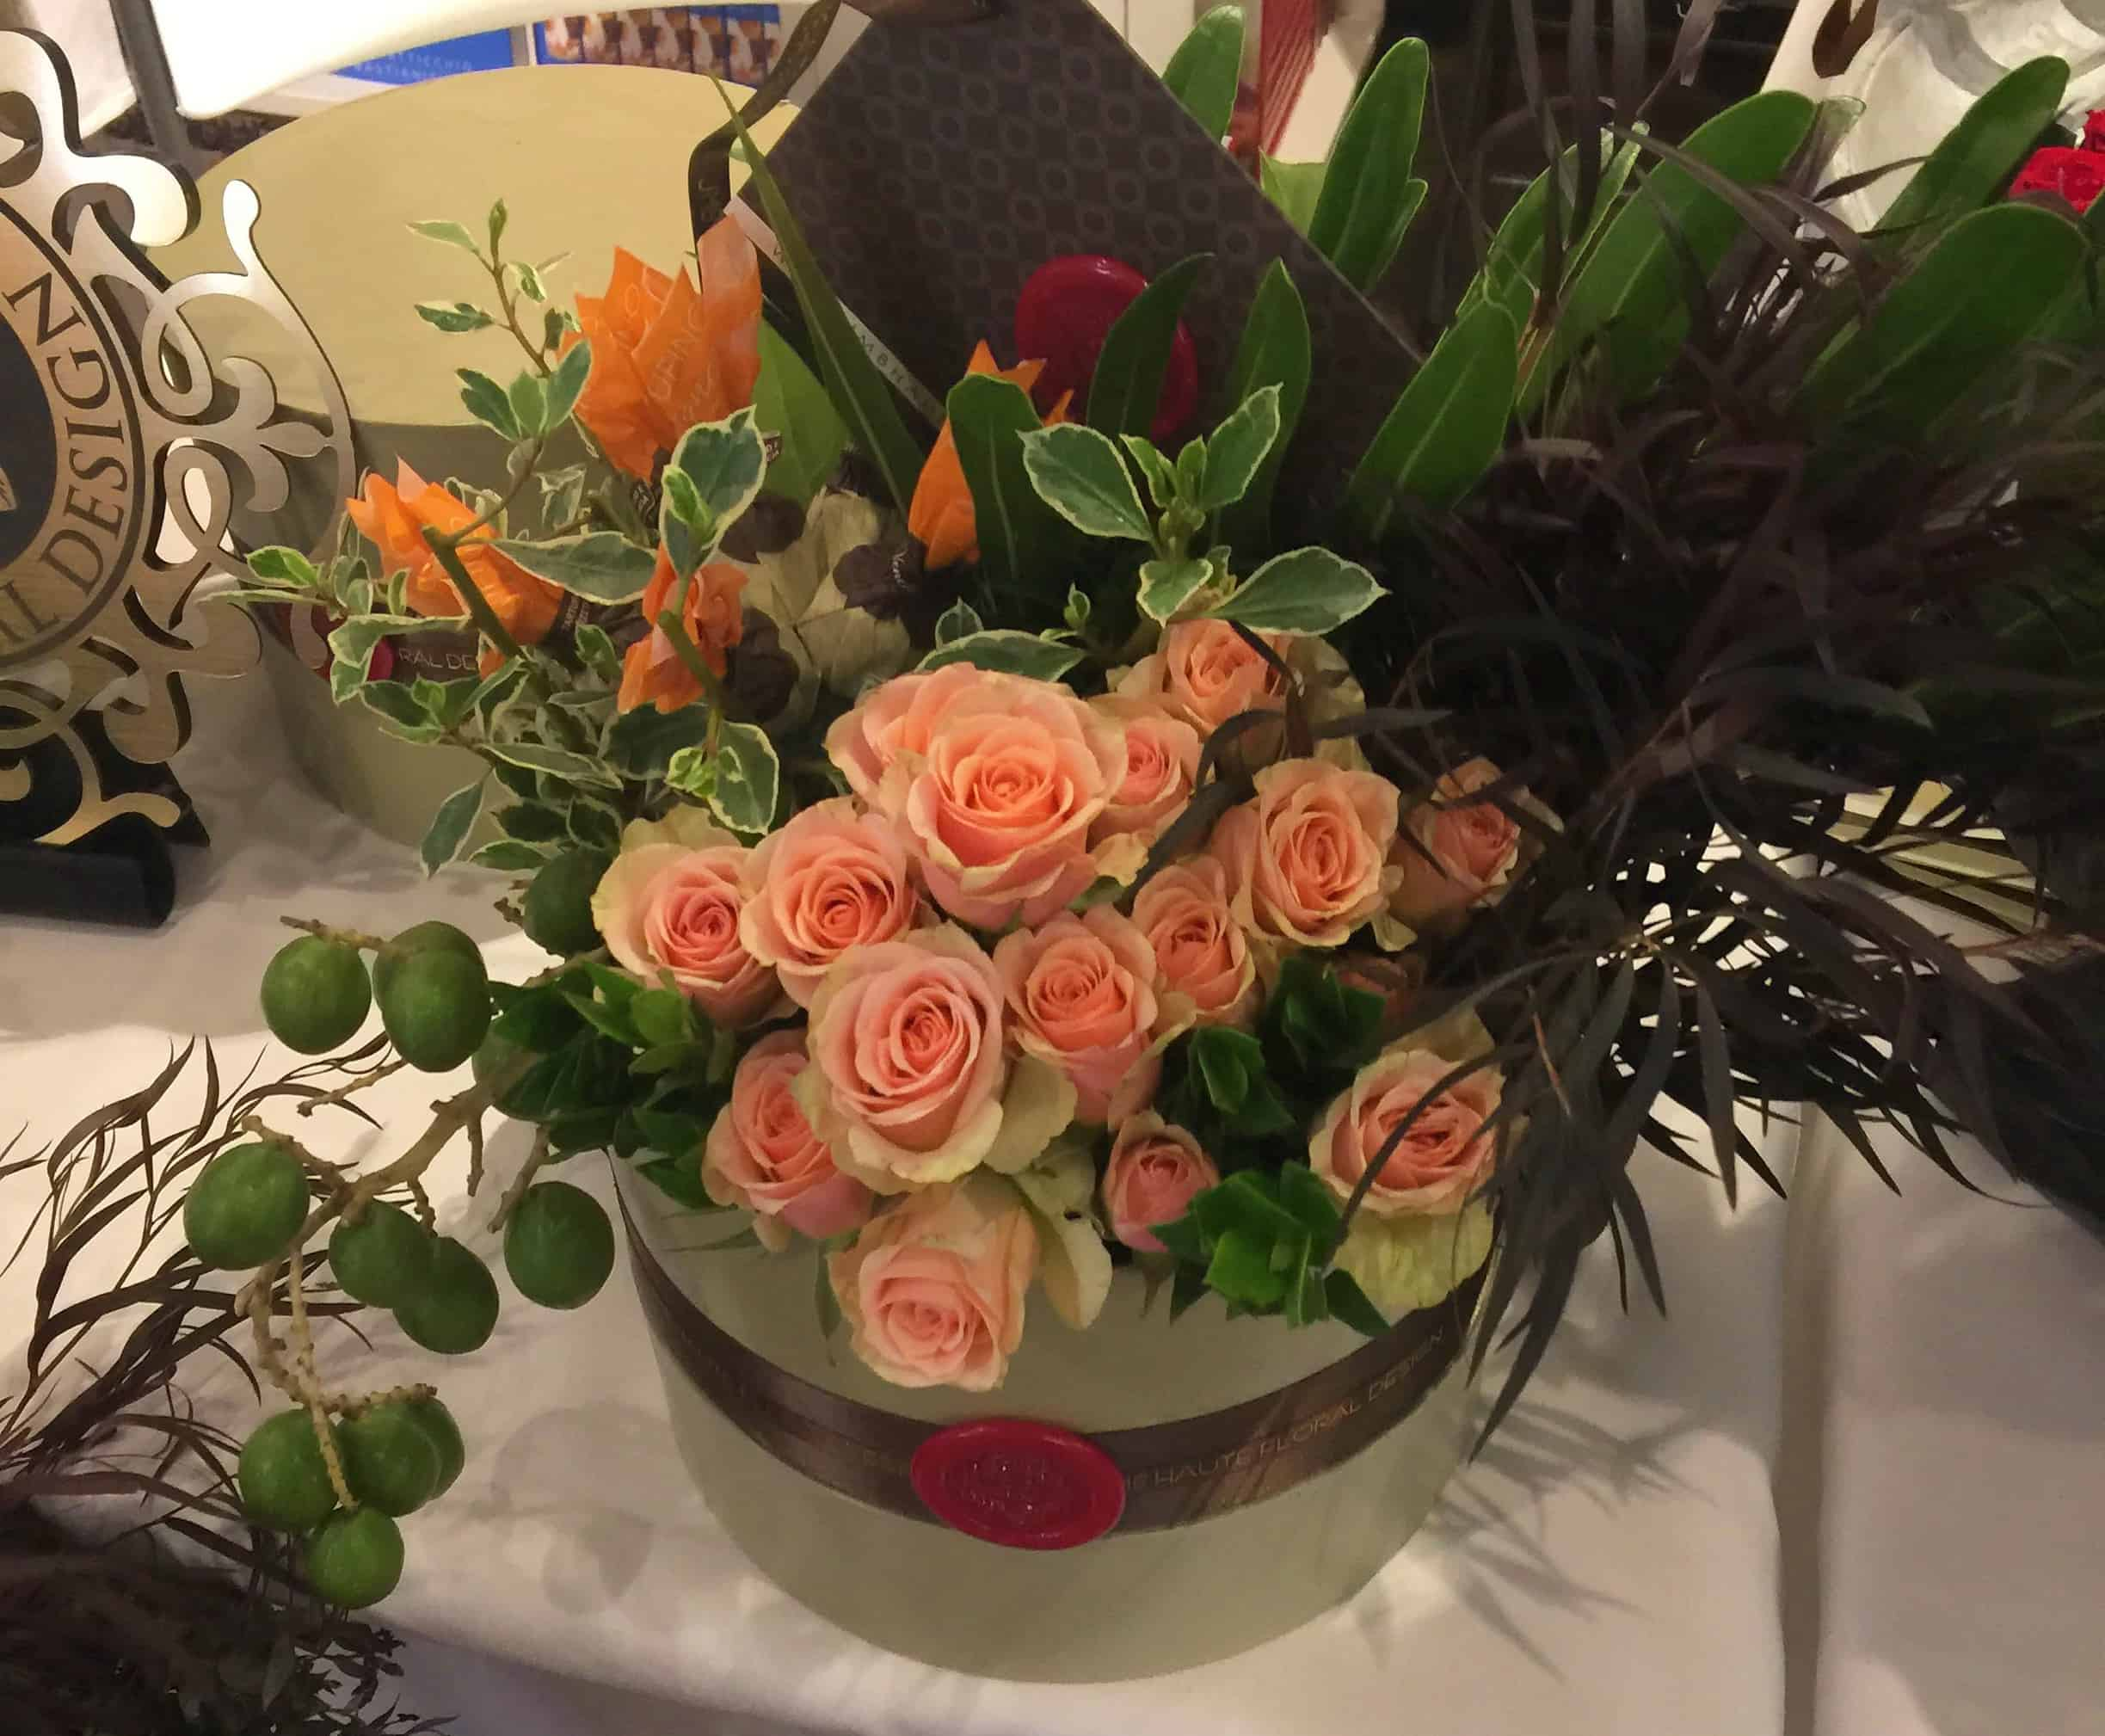 Fresh and handpicked roses and seasonal foliage